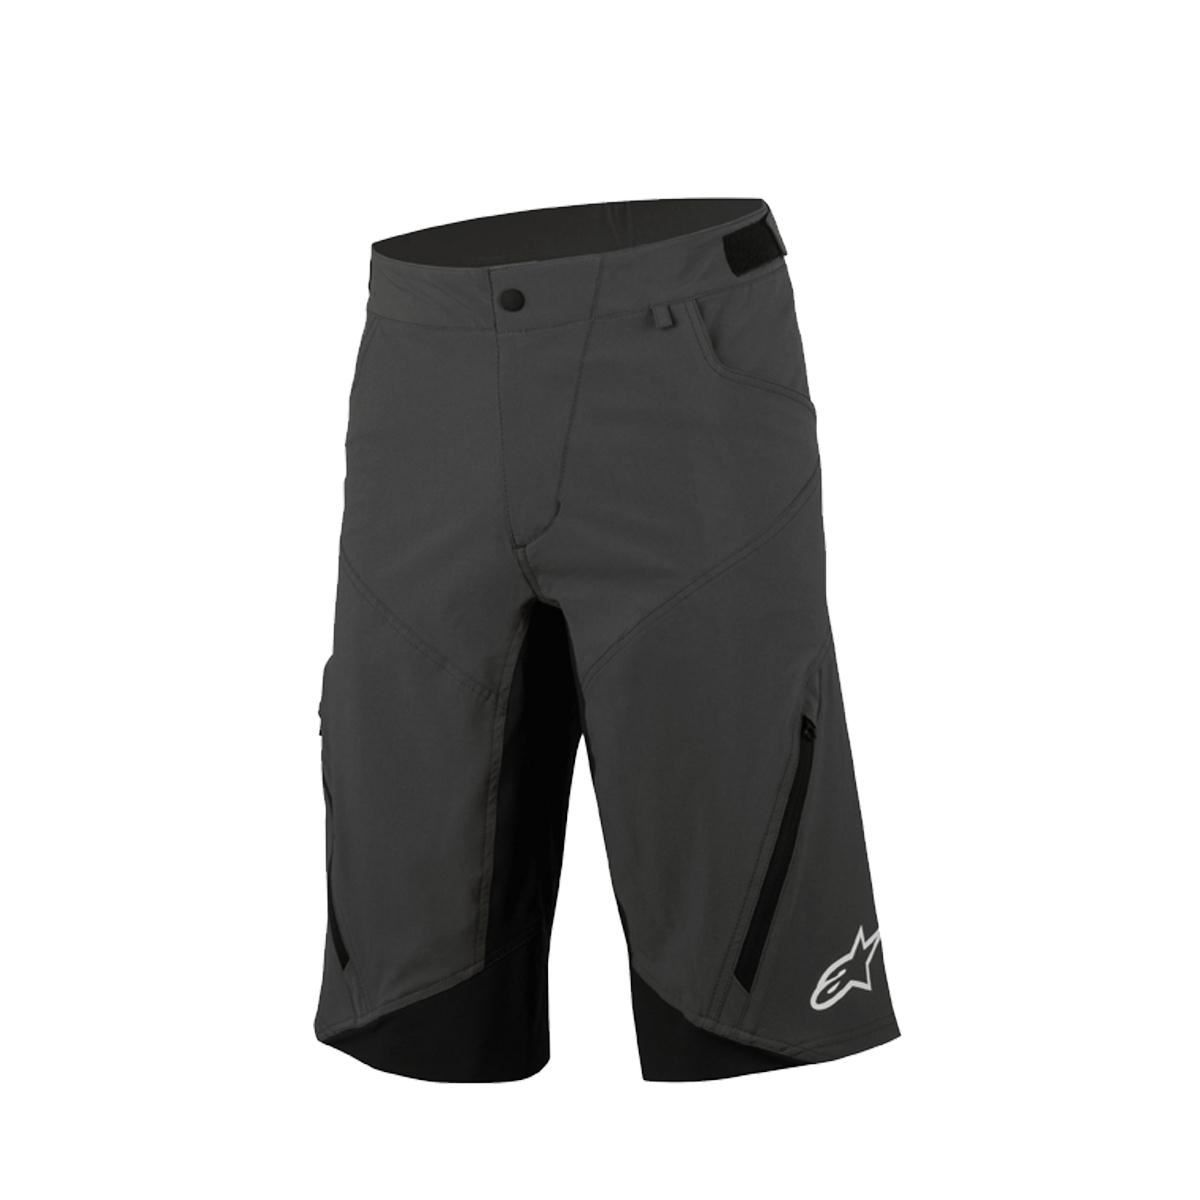 Alpinestars Northshore Shorts 2017: Black/White 32